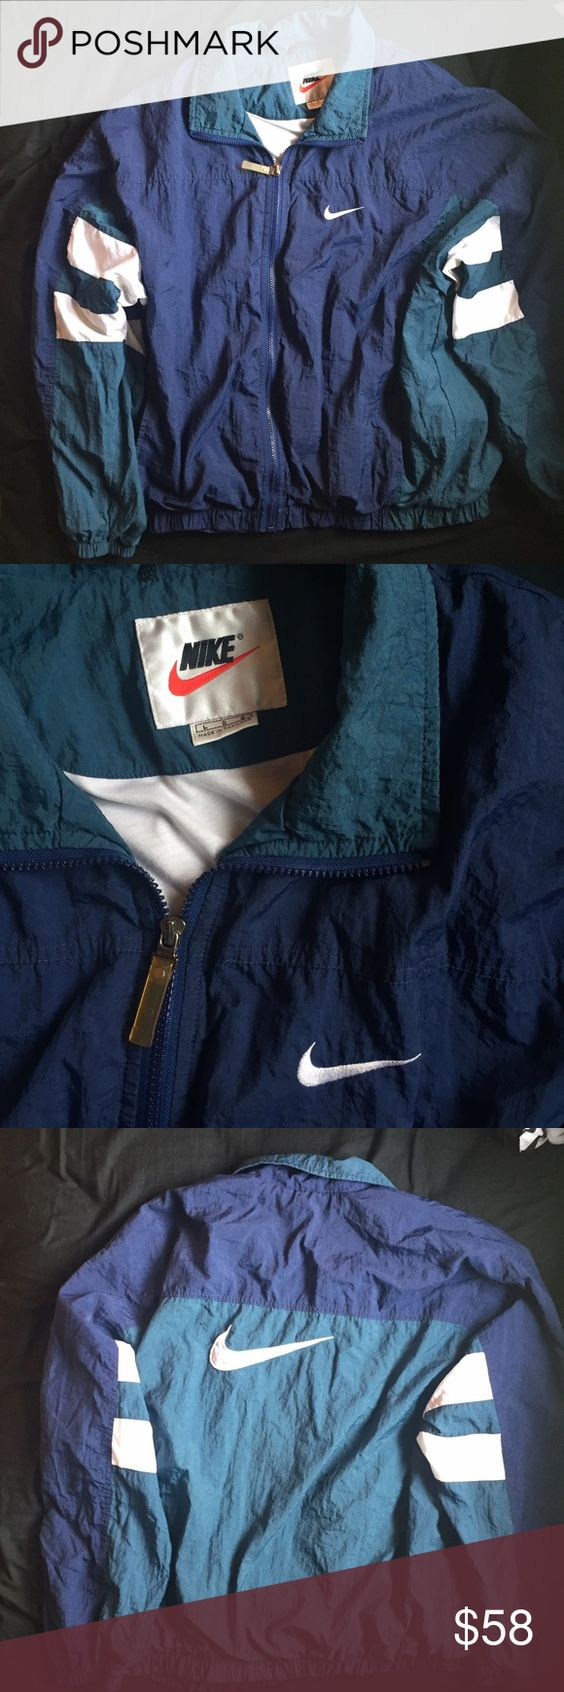 """Vintage Men's Nike Windbreaker Great condition. One very small, faded white spot - I have not tried to scrub this as I don't want to risk the jacket. Dark navy blue and dark teal with white sleeve stripes, front Nike """"pocket"""" logo, and large back Nike swoosh.  I'm selling this for someone else - therefore I cannot be as flexible with prices as normal. If you need more info, don't hesitate to ask!💕 ❌No trades.  ❌No holds. Nike Jackets & Coats Windbreakers"""